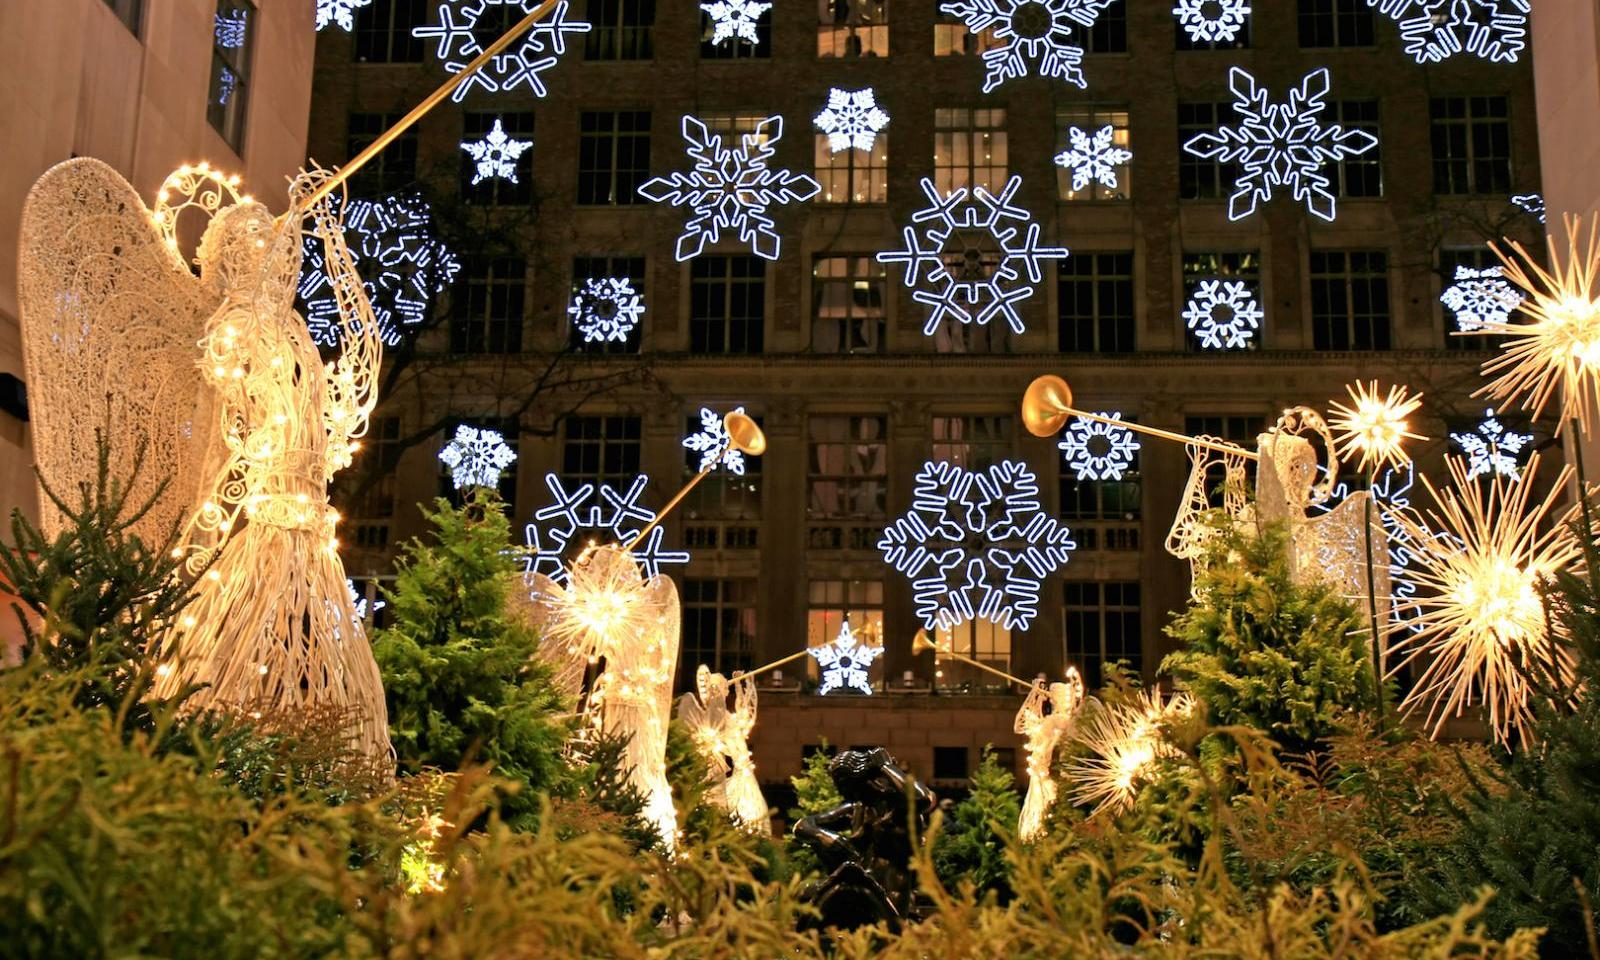 New York City Christmas Tree Lighting 2020 ▷ The Christmas Tree at Rockefeller Center 2020 | A New York